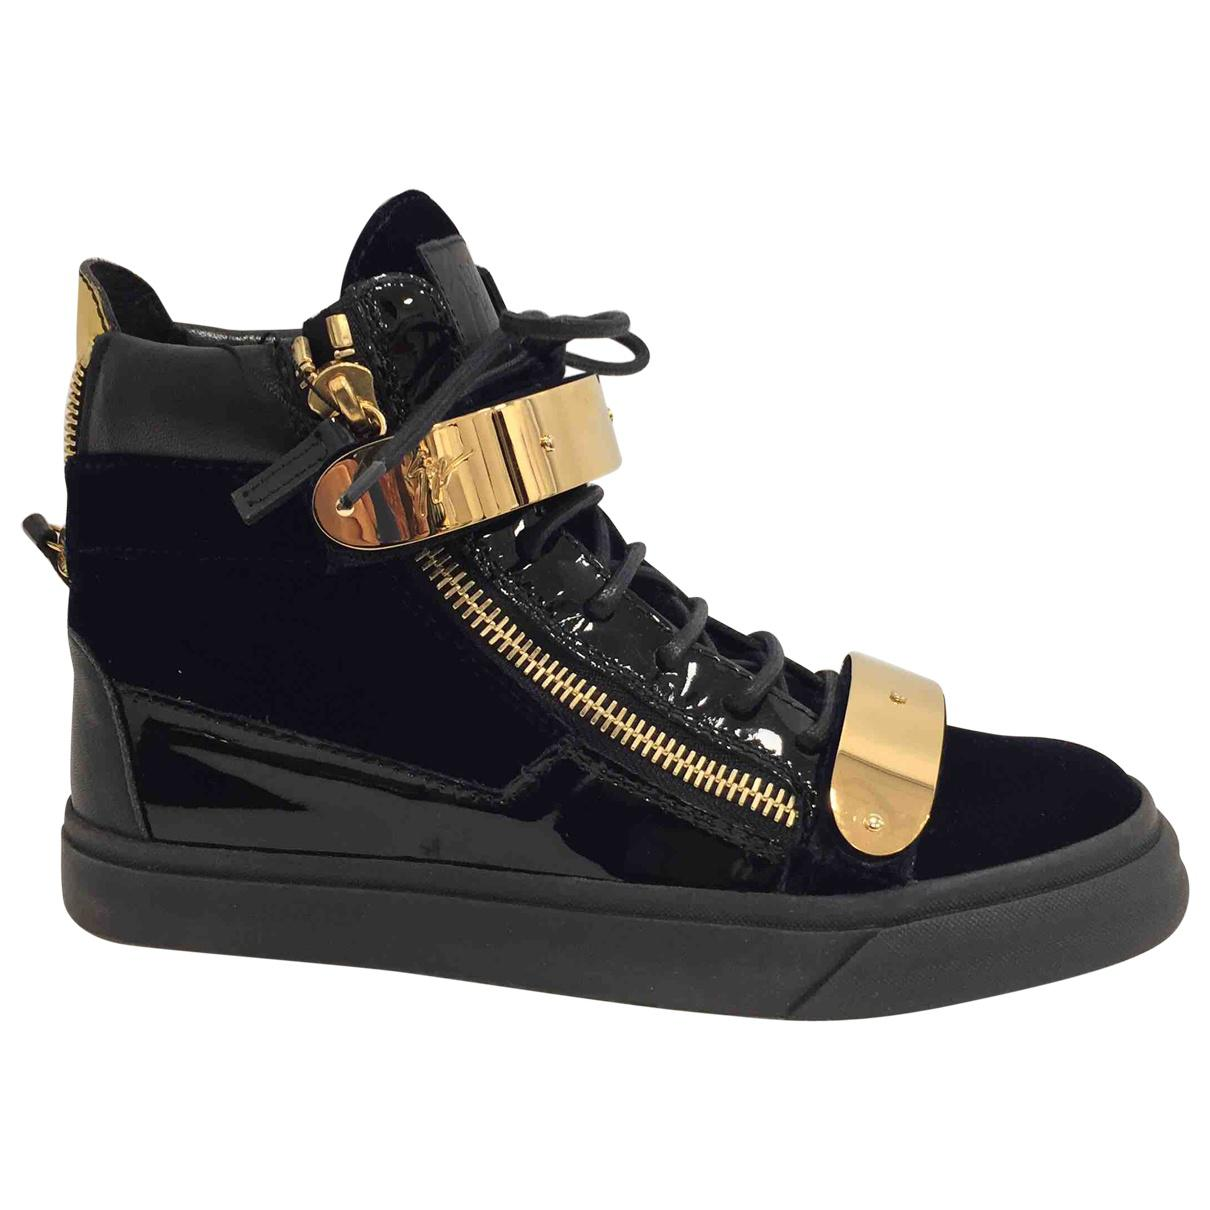 Pre-owned - Leather trainers Giuseppe Zanotti MelgbjF